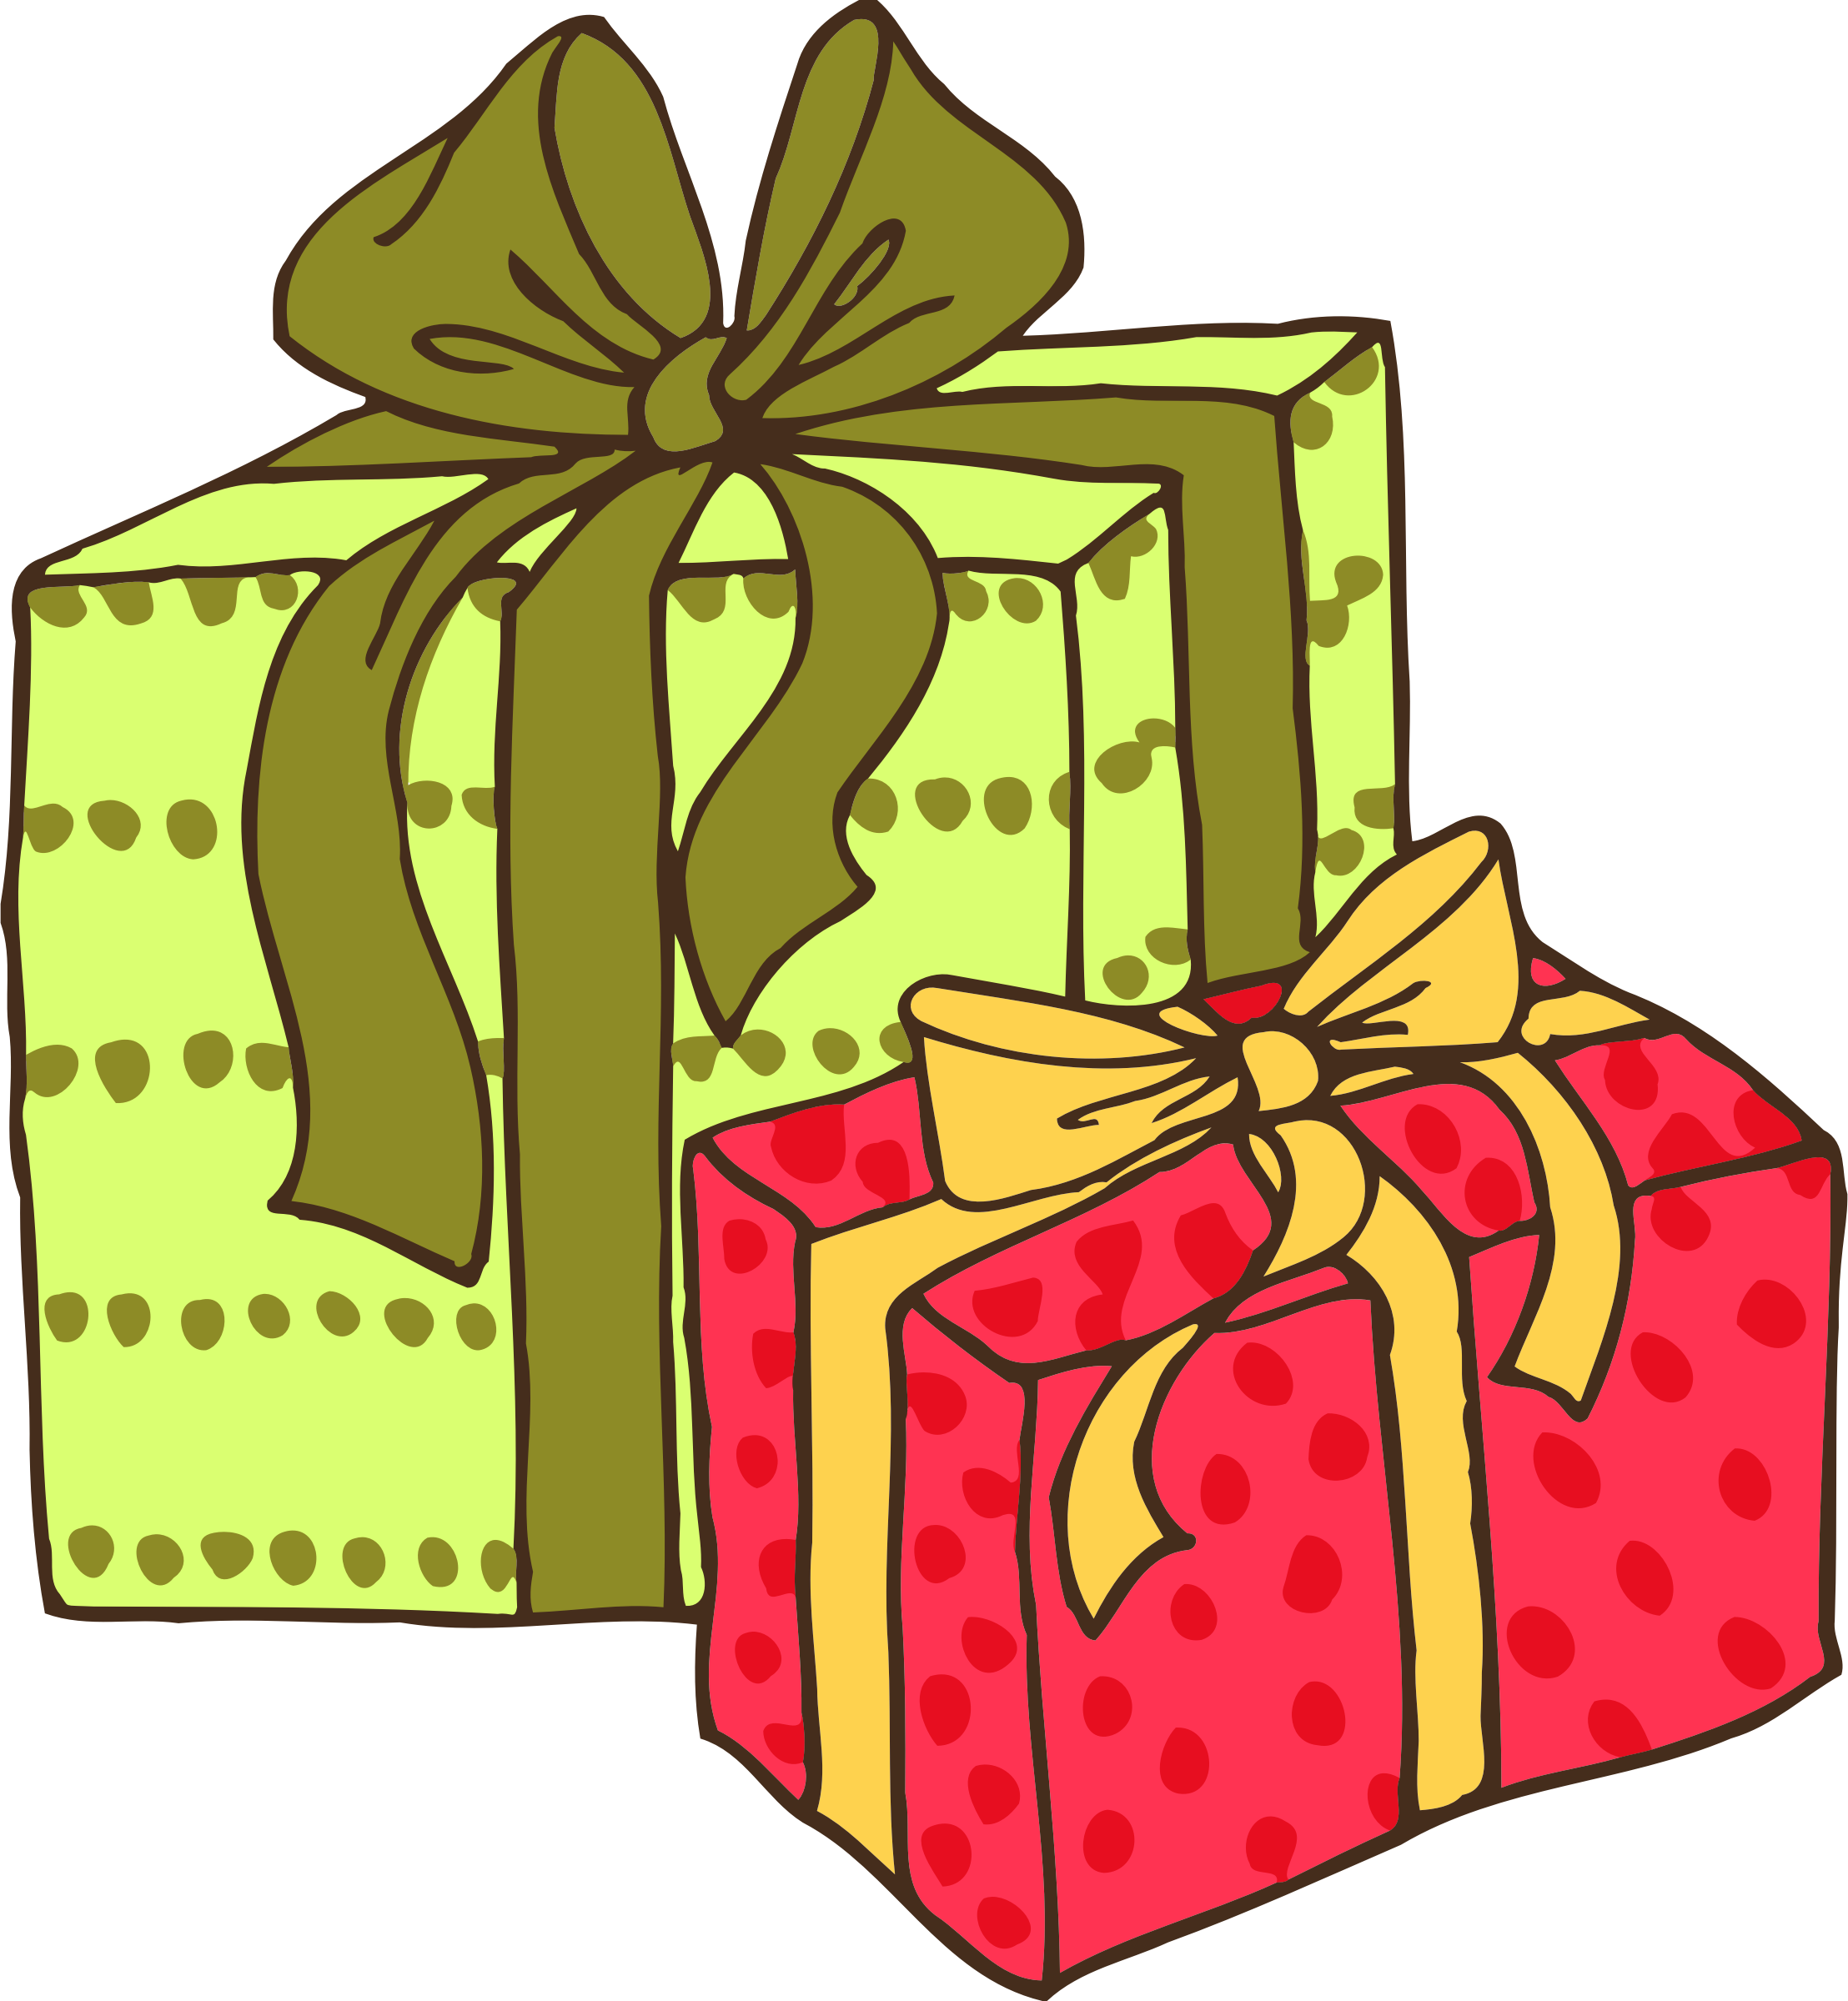 clipart presents rh openclipart org clip art presents gifts clipart presentation